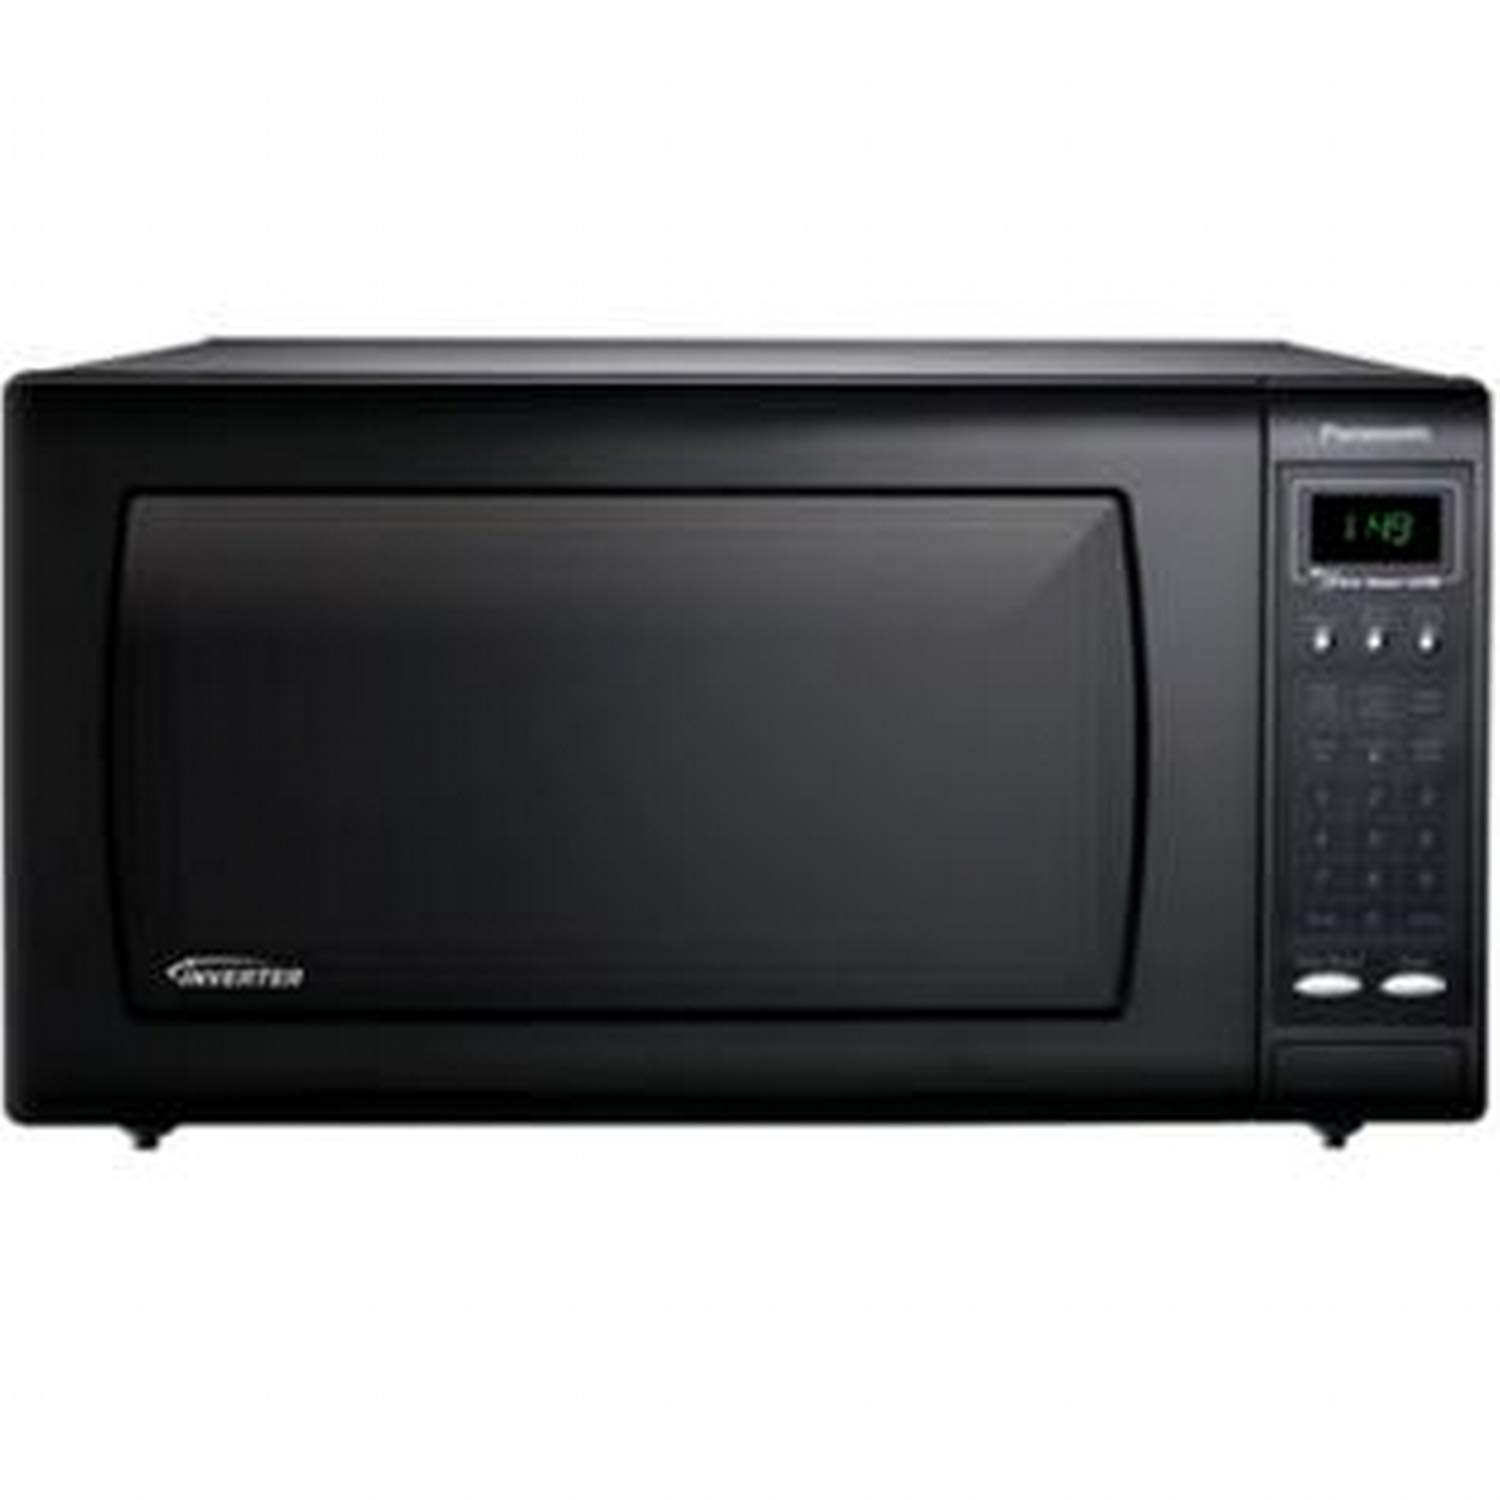 Top 10 Best Microwave Ovens (2020 Reviews & Buying Guide) 2